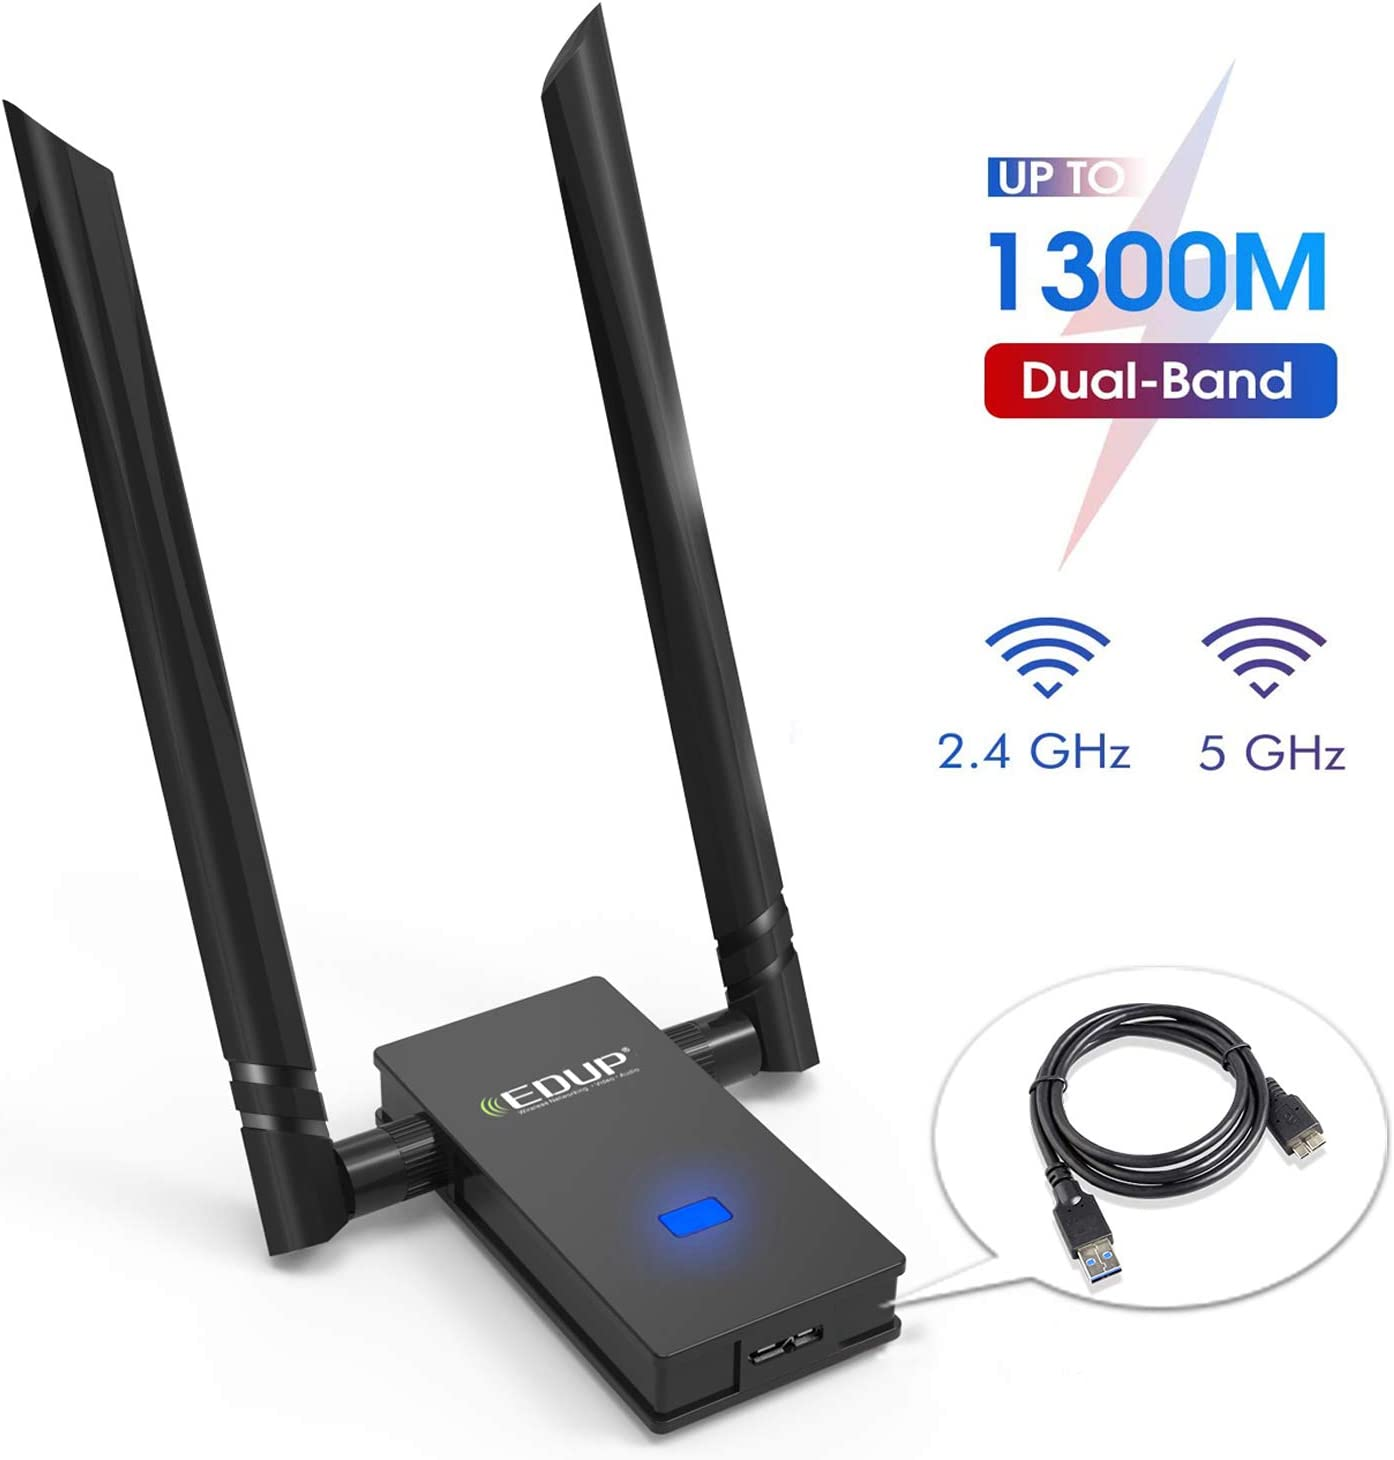 EDUP WiFi Adapter 1300Mbps USB 3.0 High Gain Wireless Adapter 802.11AC Dual Band with 5G/867Mbps 2.4G/400Mbps 6DBI External Dual Antennas Supports Windows 10/8.1/8/7/XP/Vista, Mac OS X 10.7-10.15